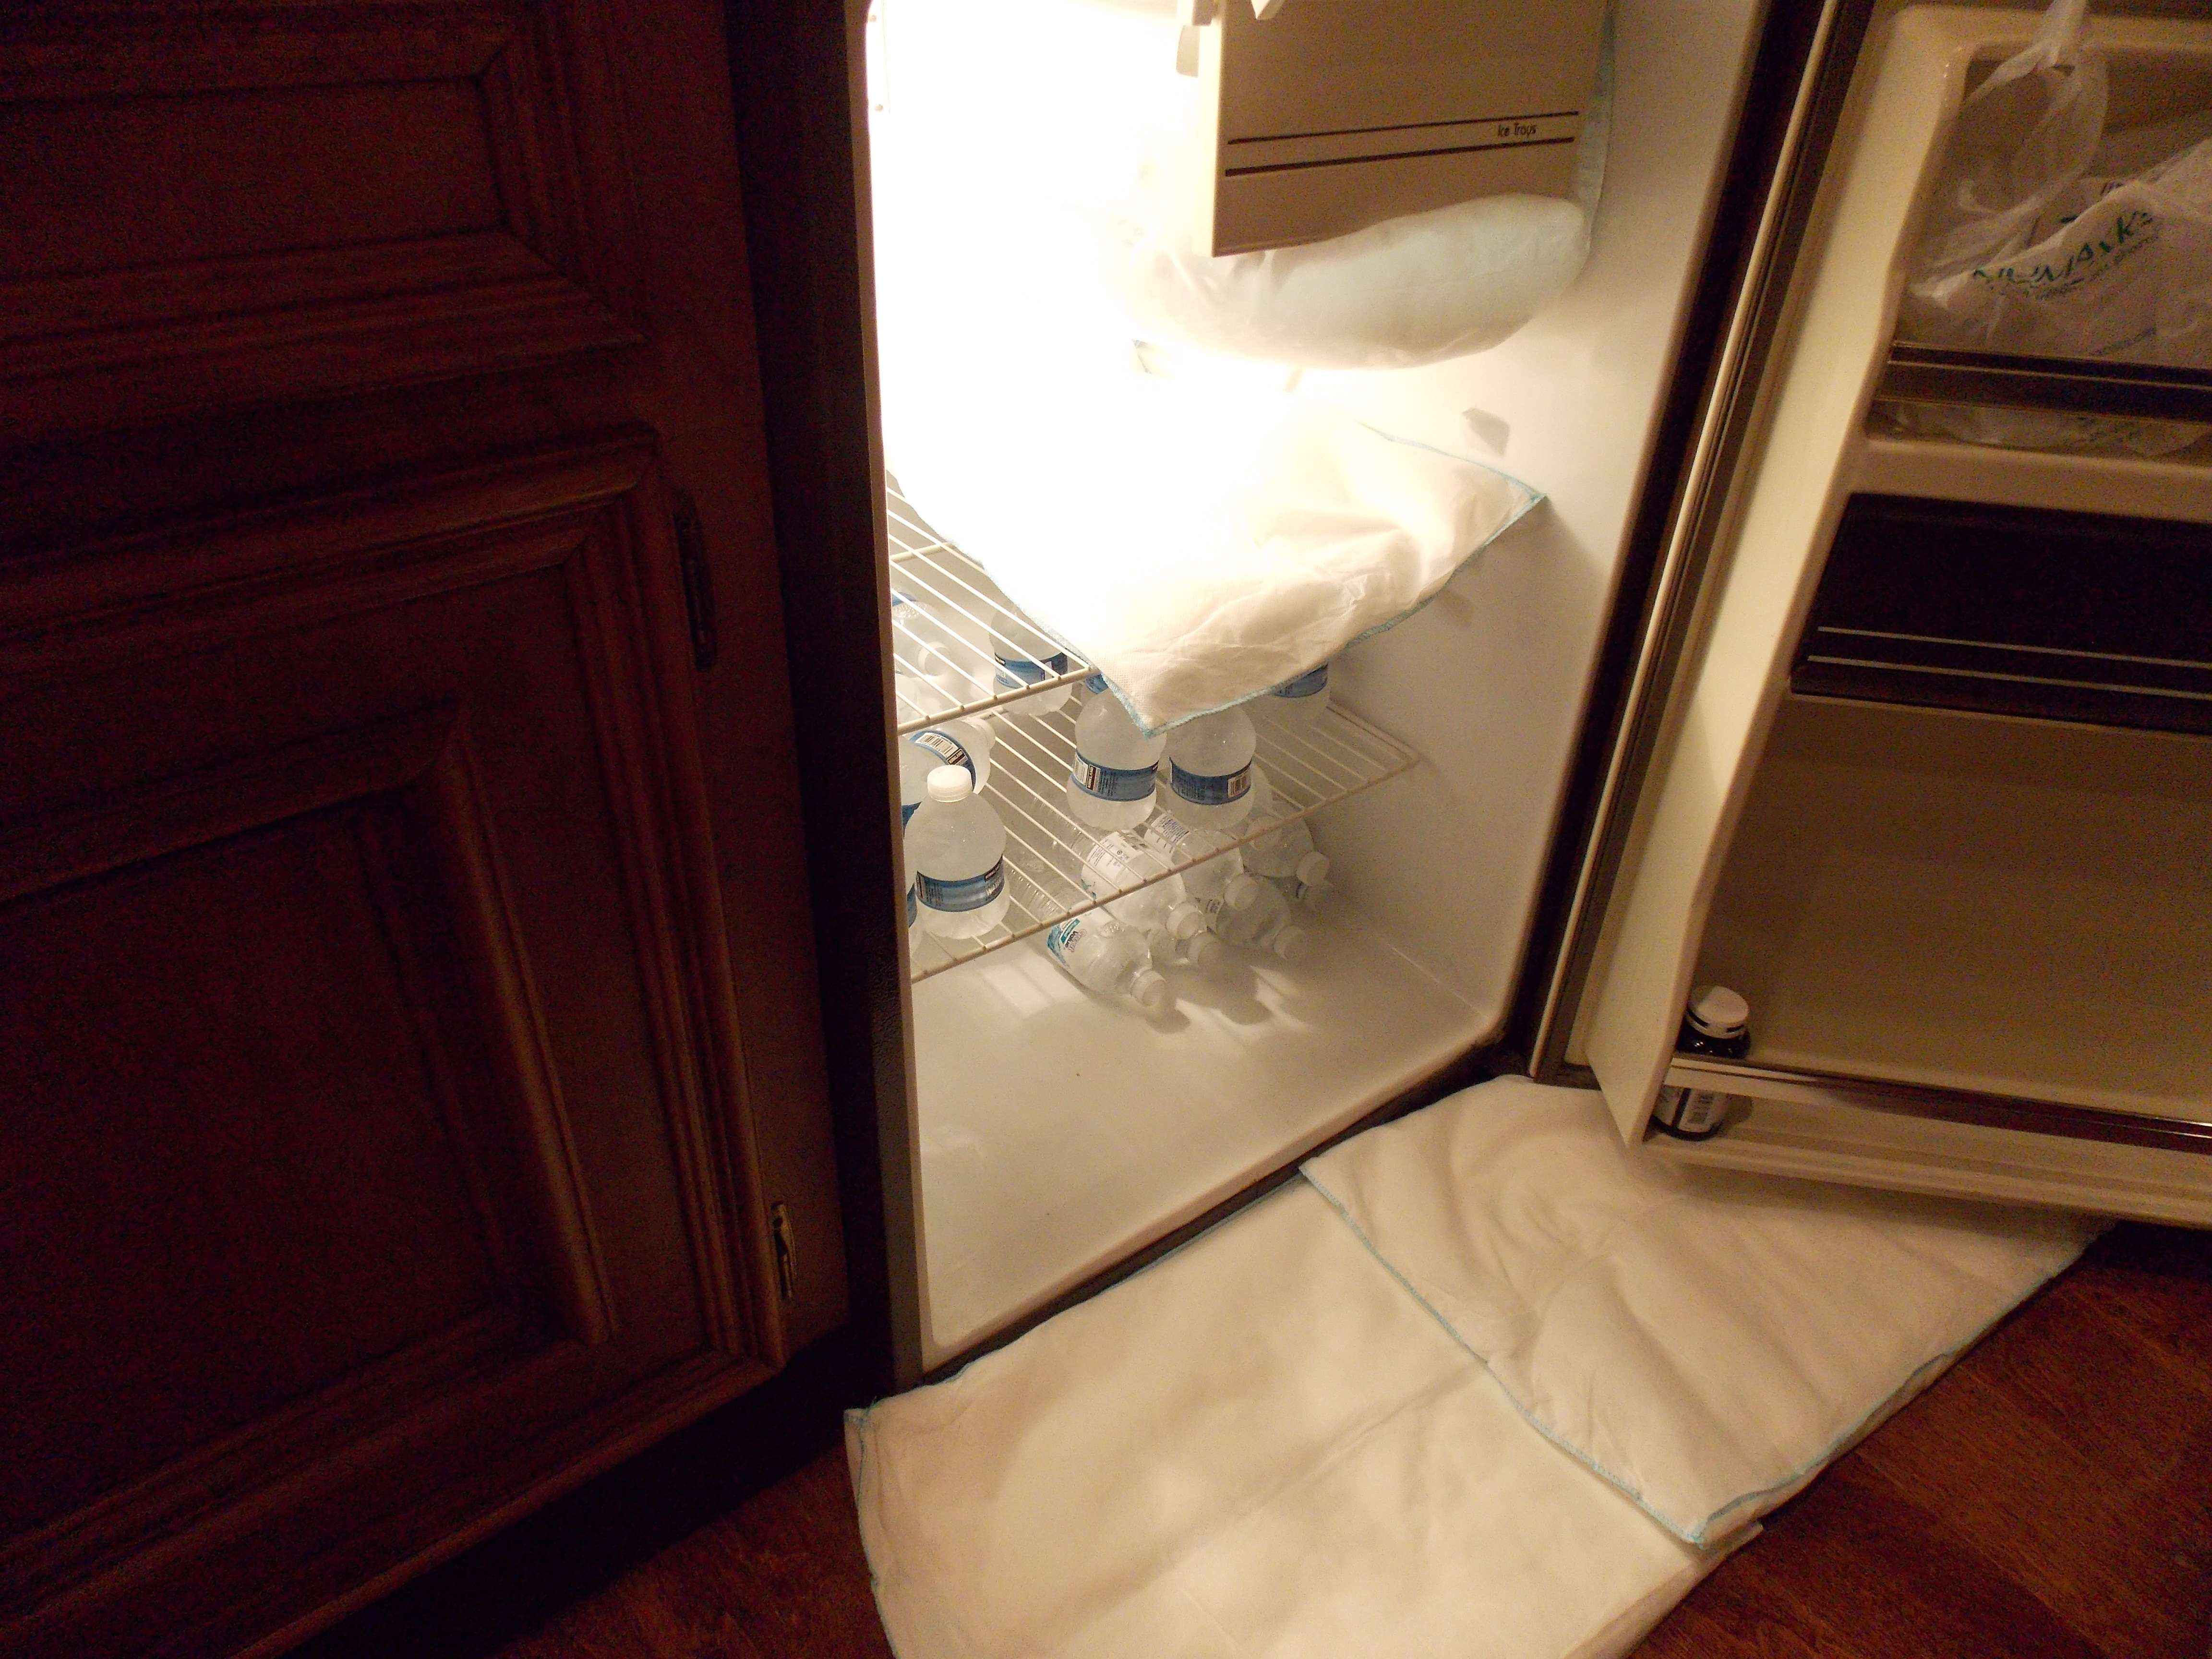 Plumbing leaking fridge.jpg